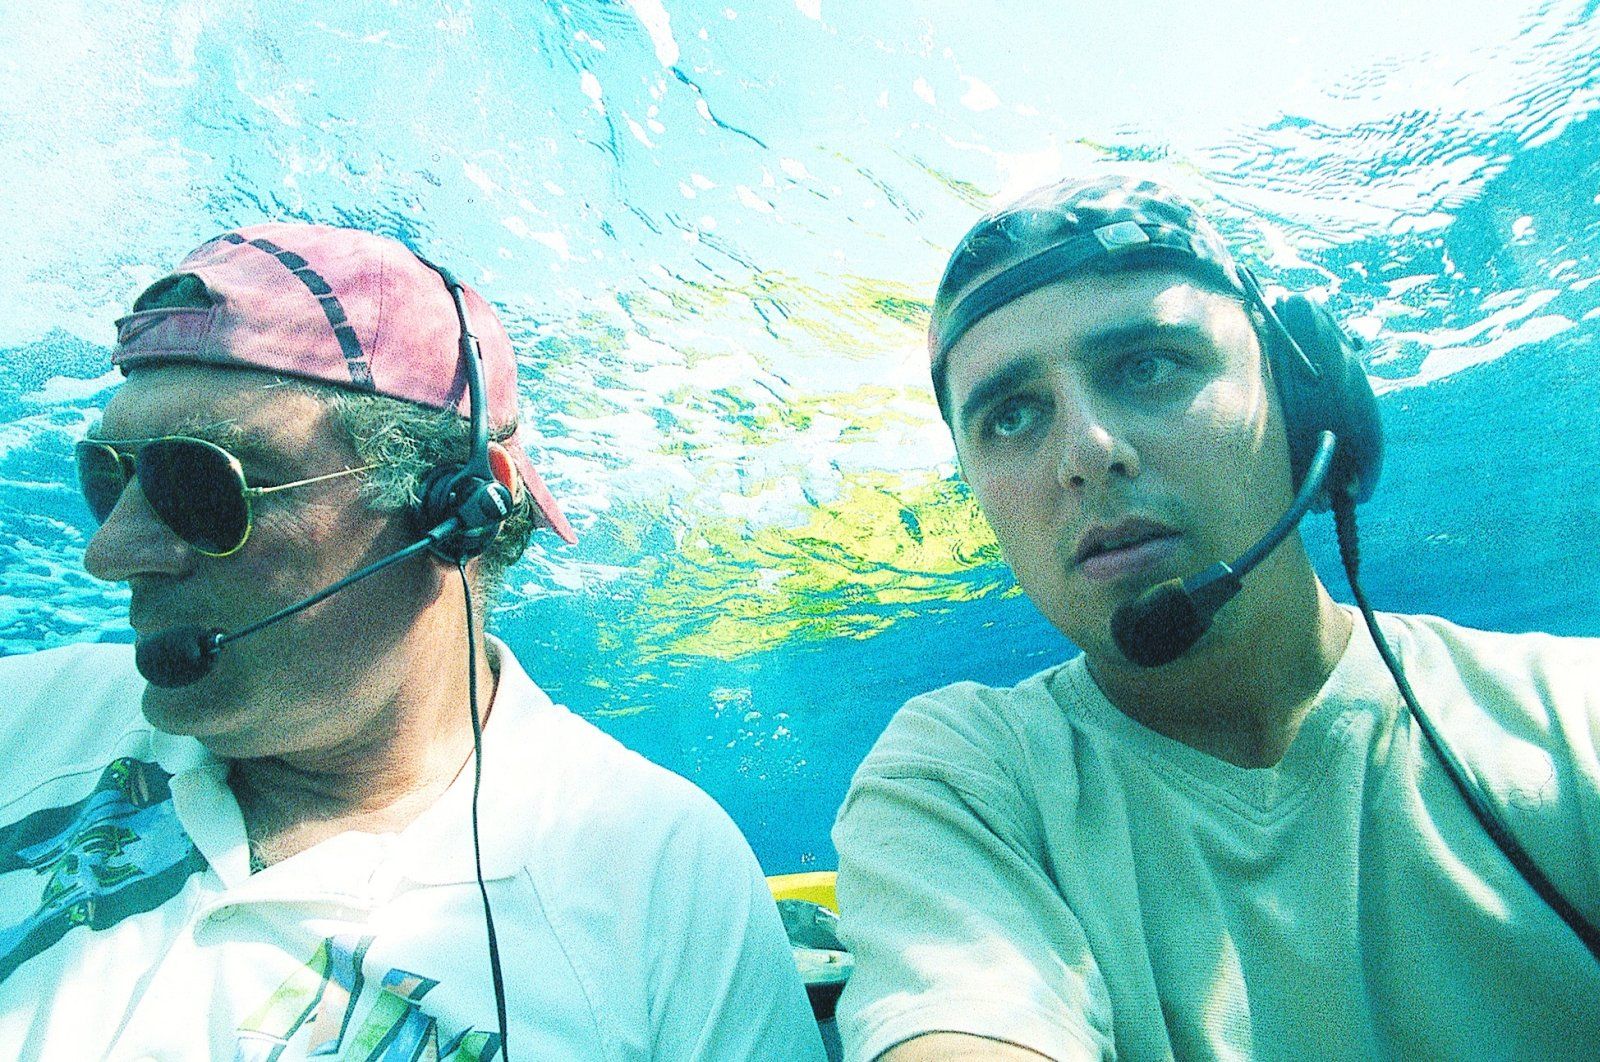 American George Fletcher Bass (L) is widely accepted as the father of underwater archaeology. (FILE Photo)